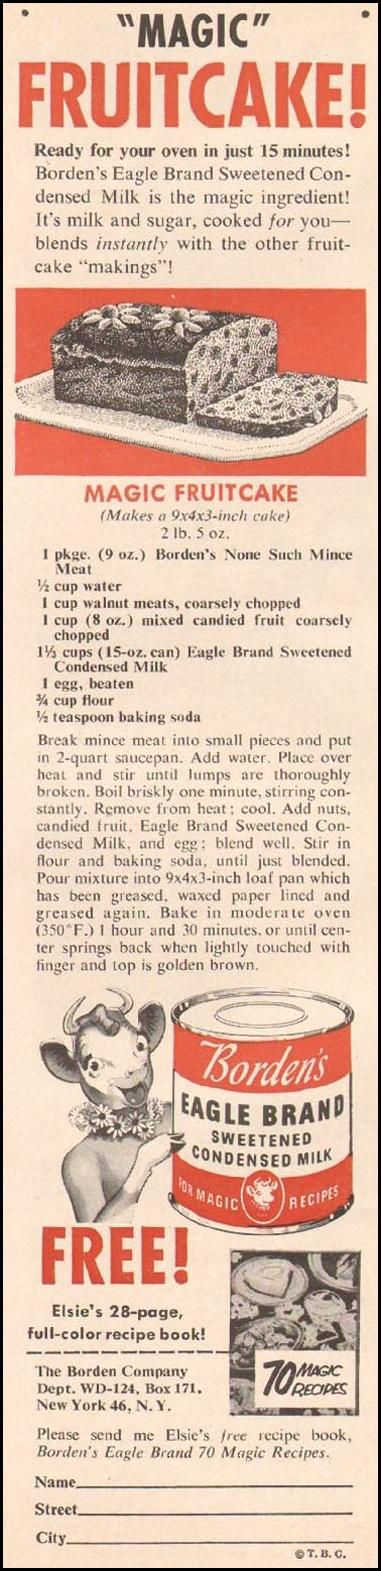 BORDEN'S EAGLE BRAND SWEETENED CONDENSED MILK WOMAN'S DAY 12/01/1955 p. 106